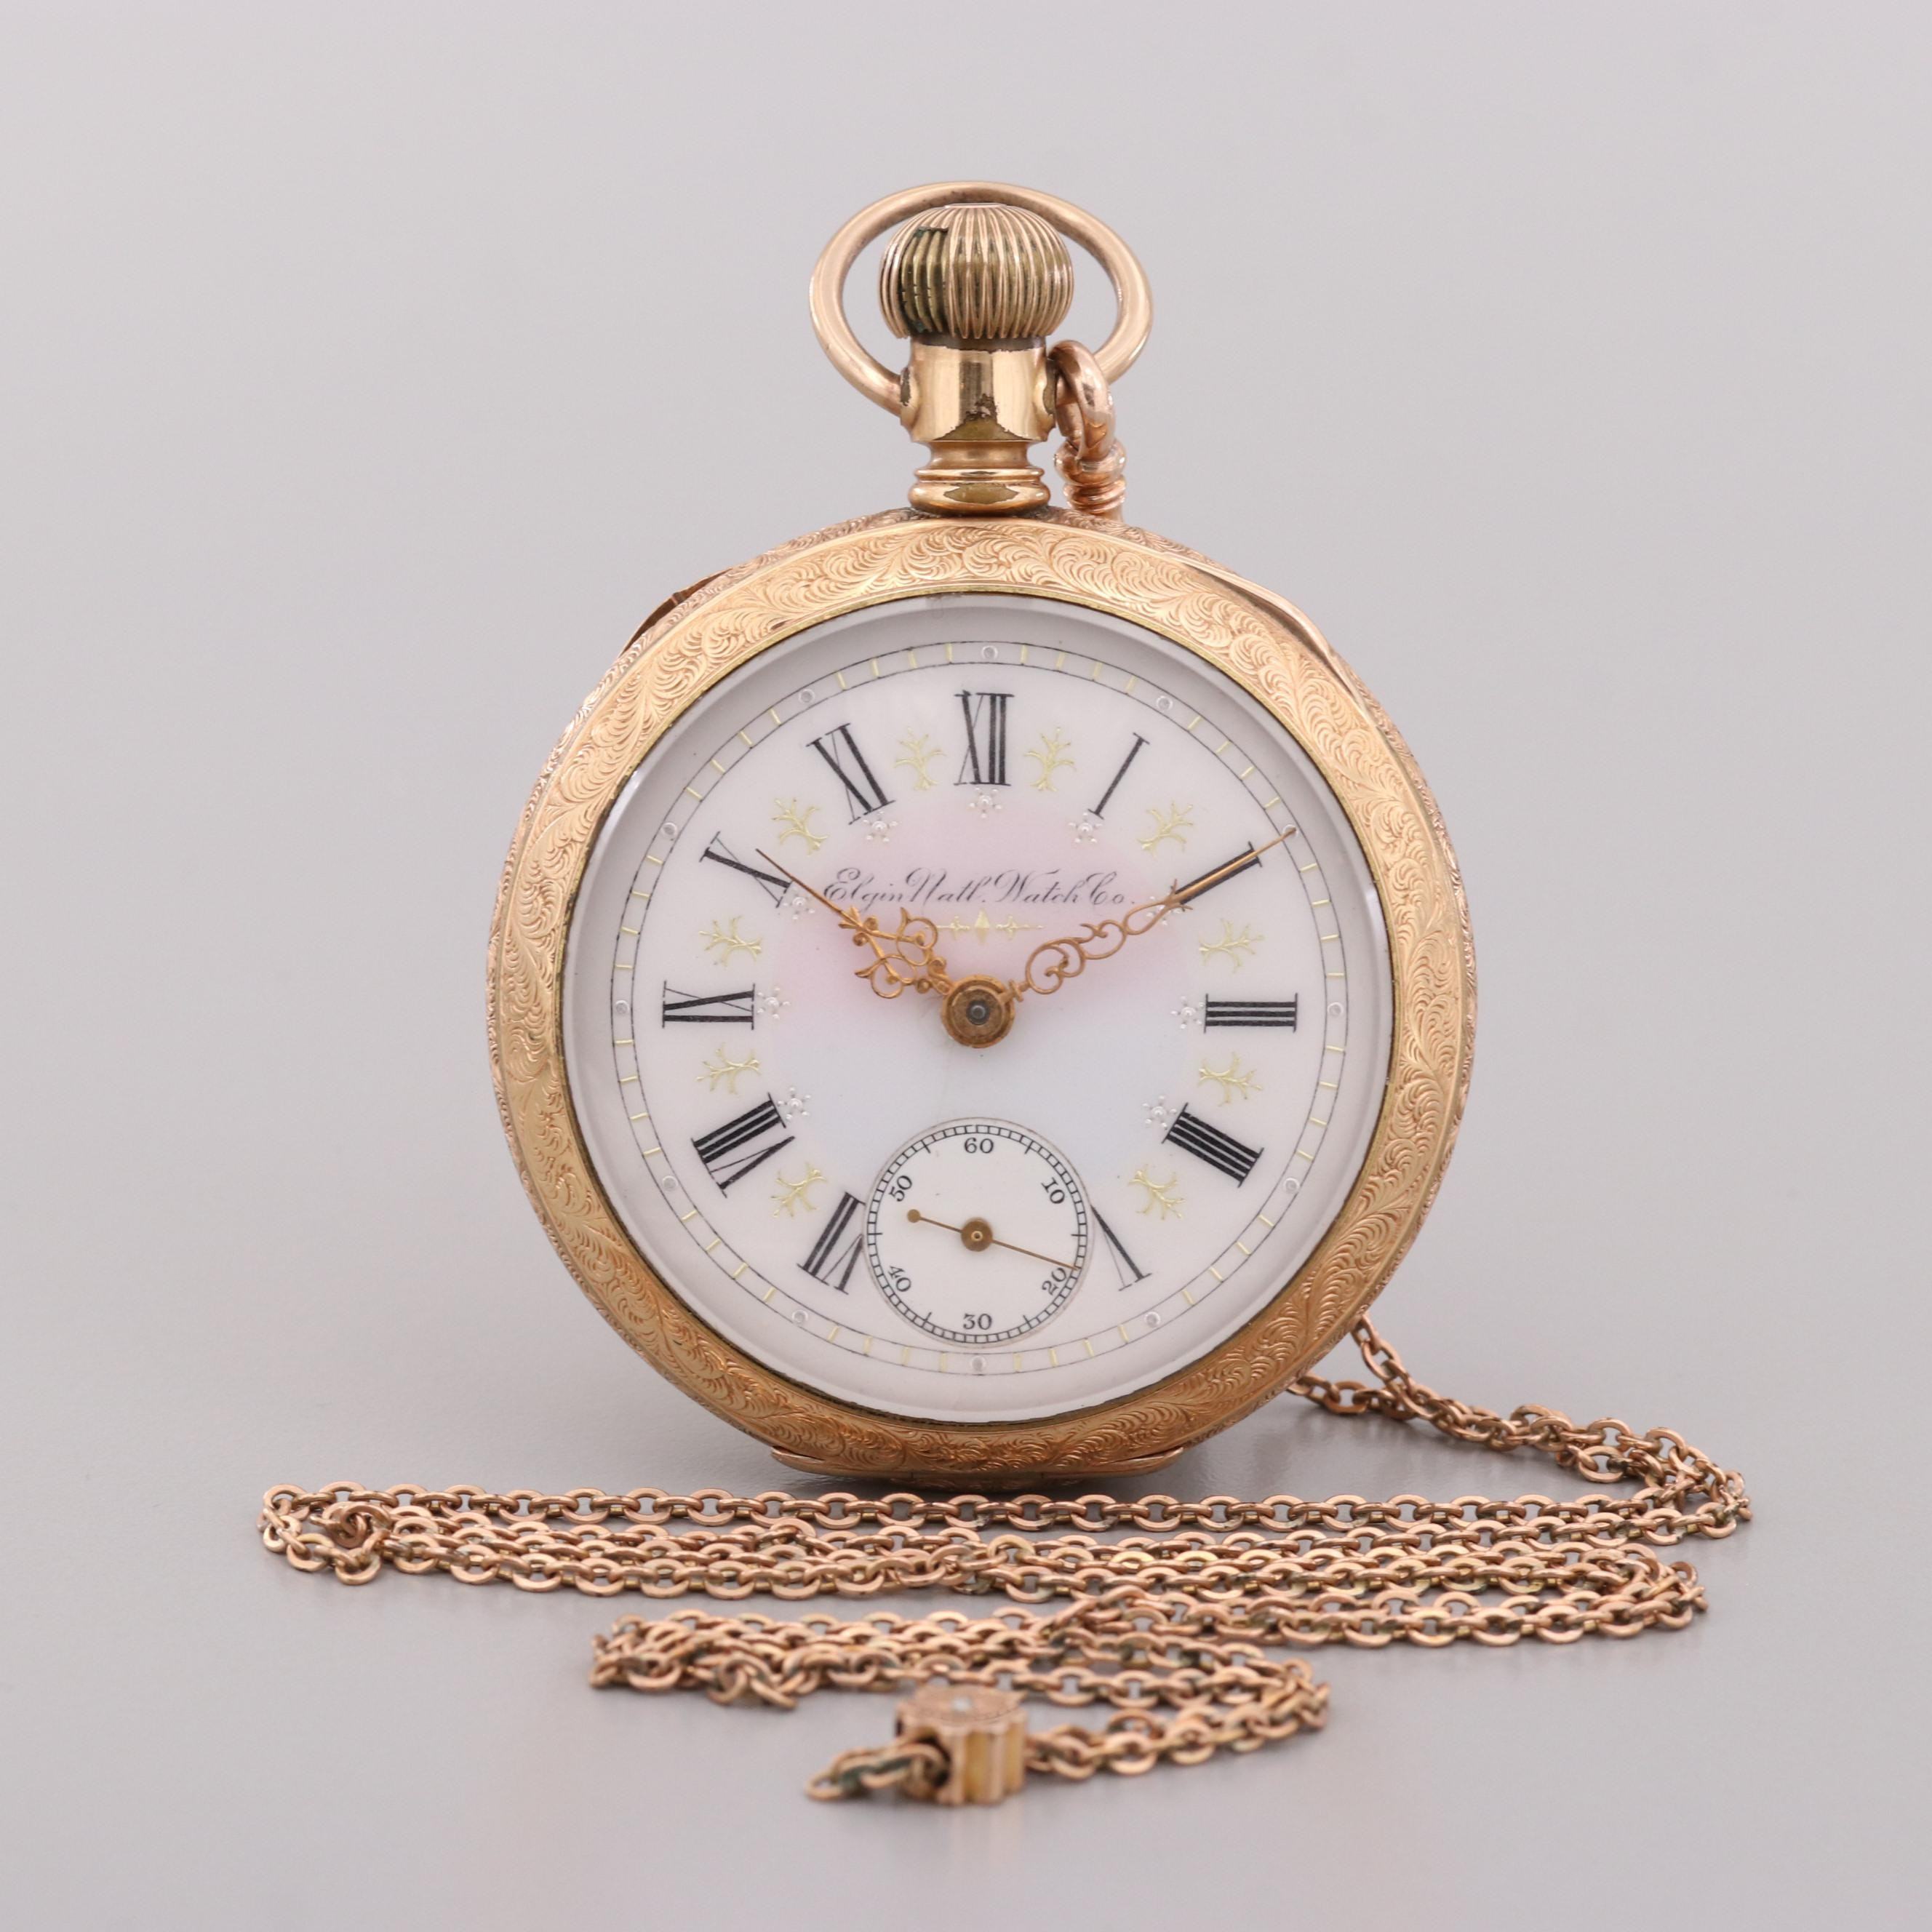 Elgin National Watch Co. Gold Filled Pocket Watch With Diamond Fob Chain,  1898